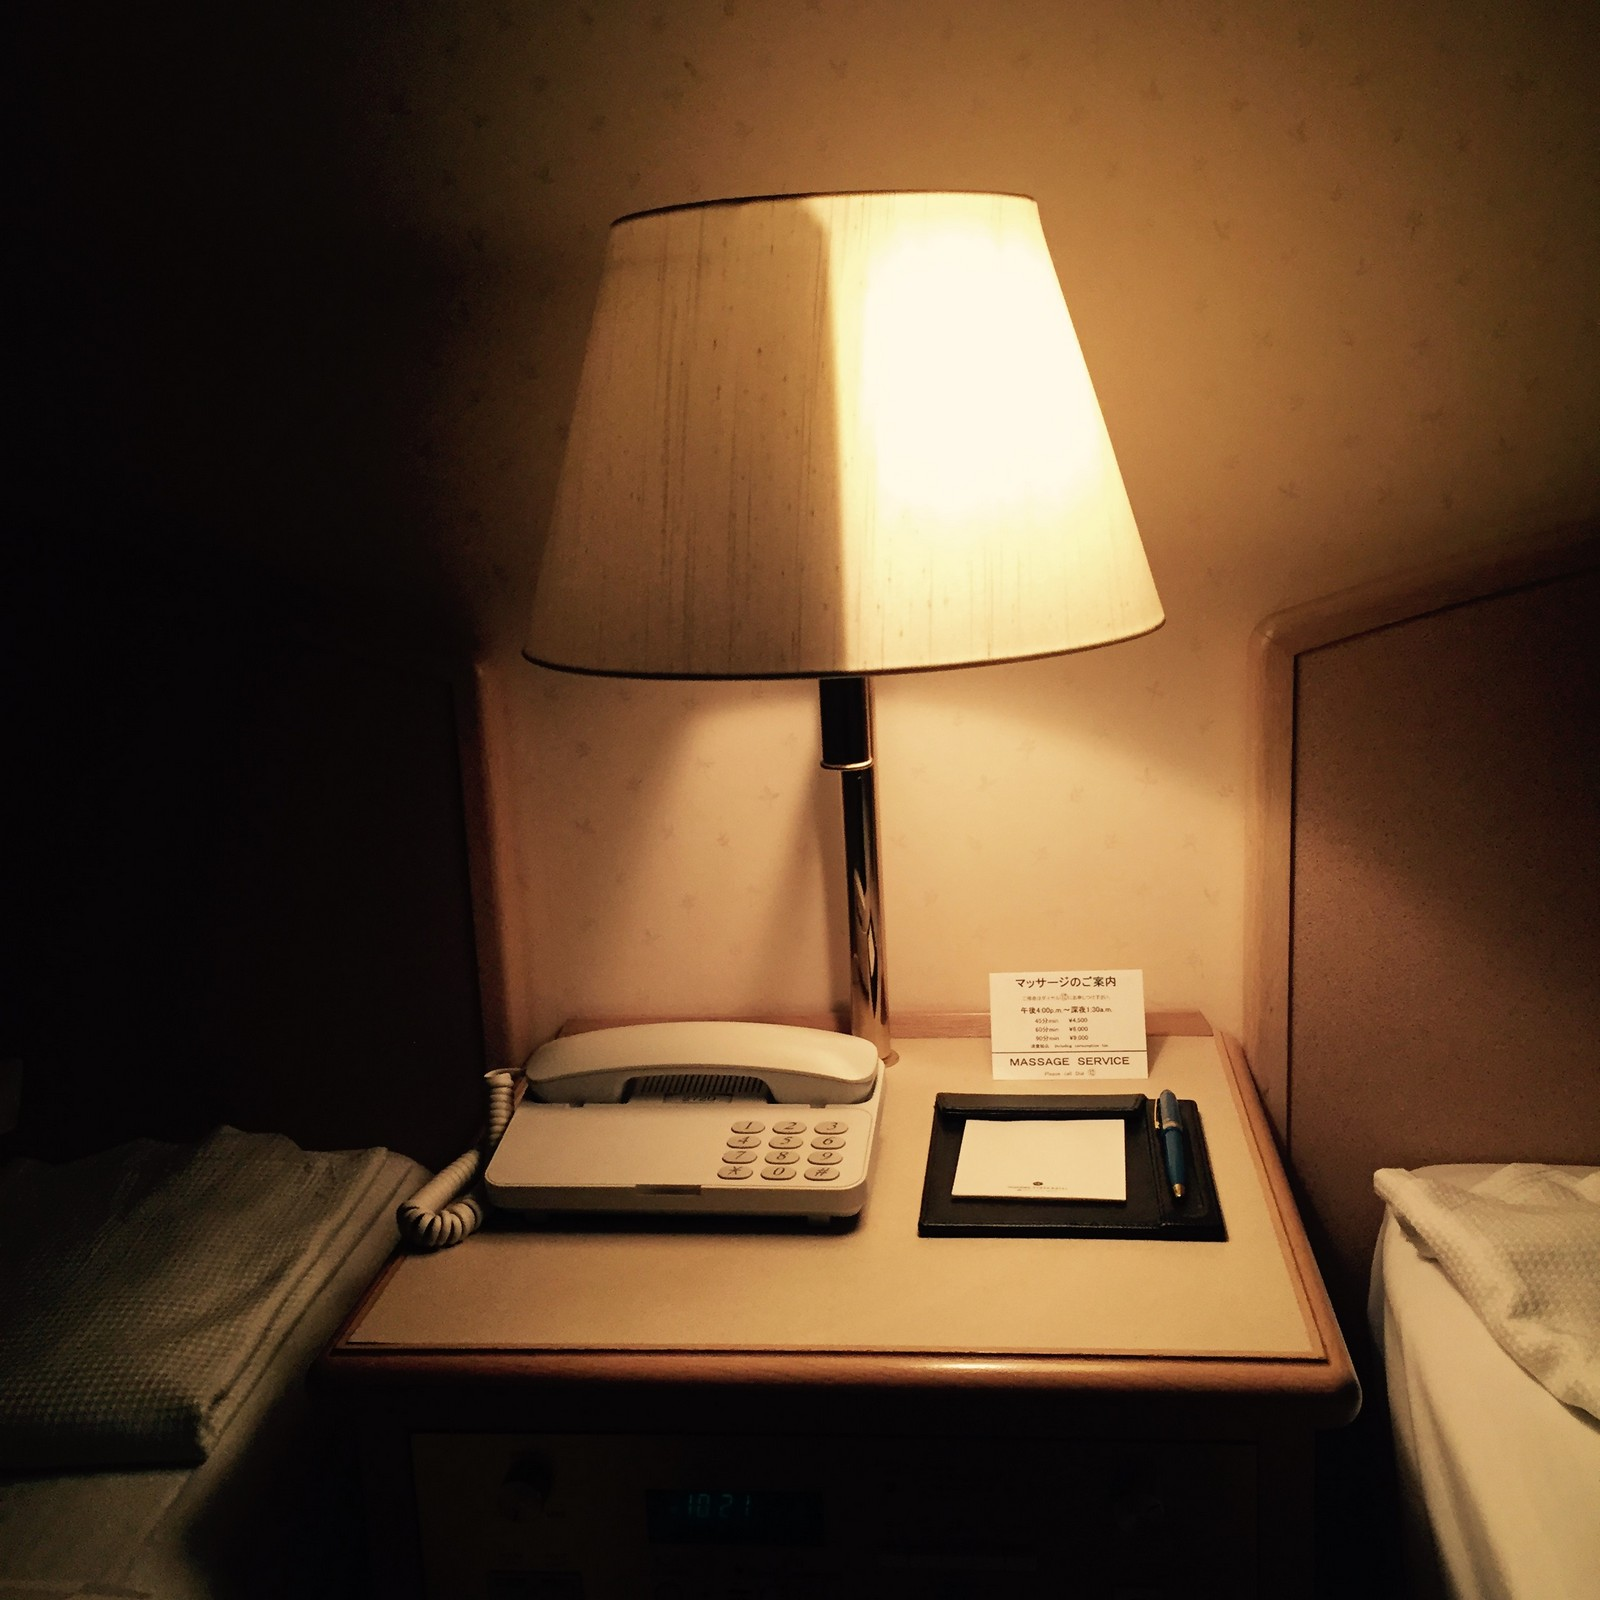 15 New Inventions - Double-sided lamp.